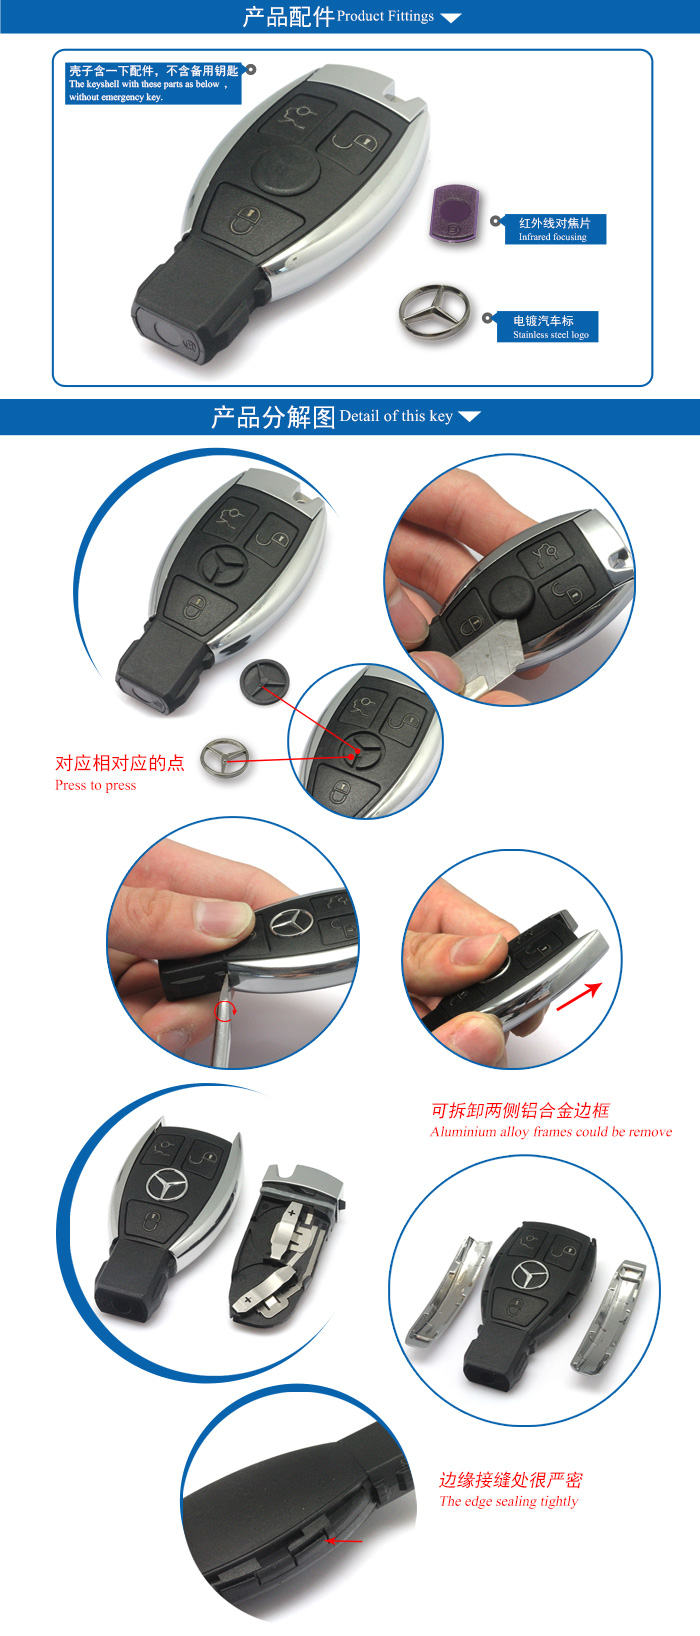 Remote Key Shell 3 Buttons 315mhz for Mercedes-Benz - 01